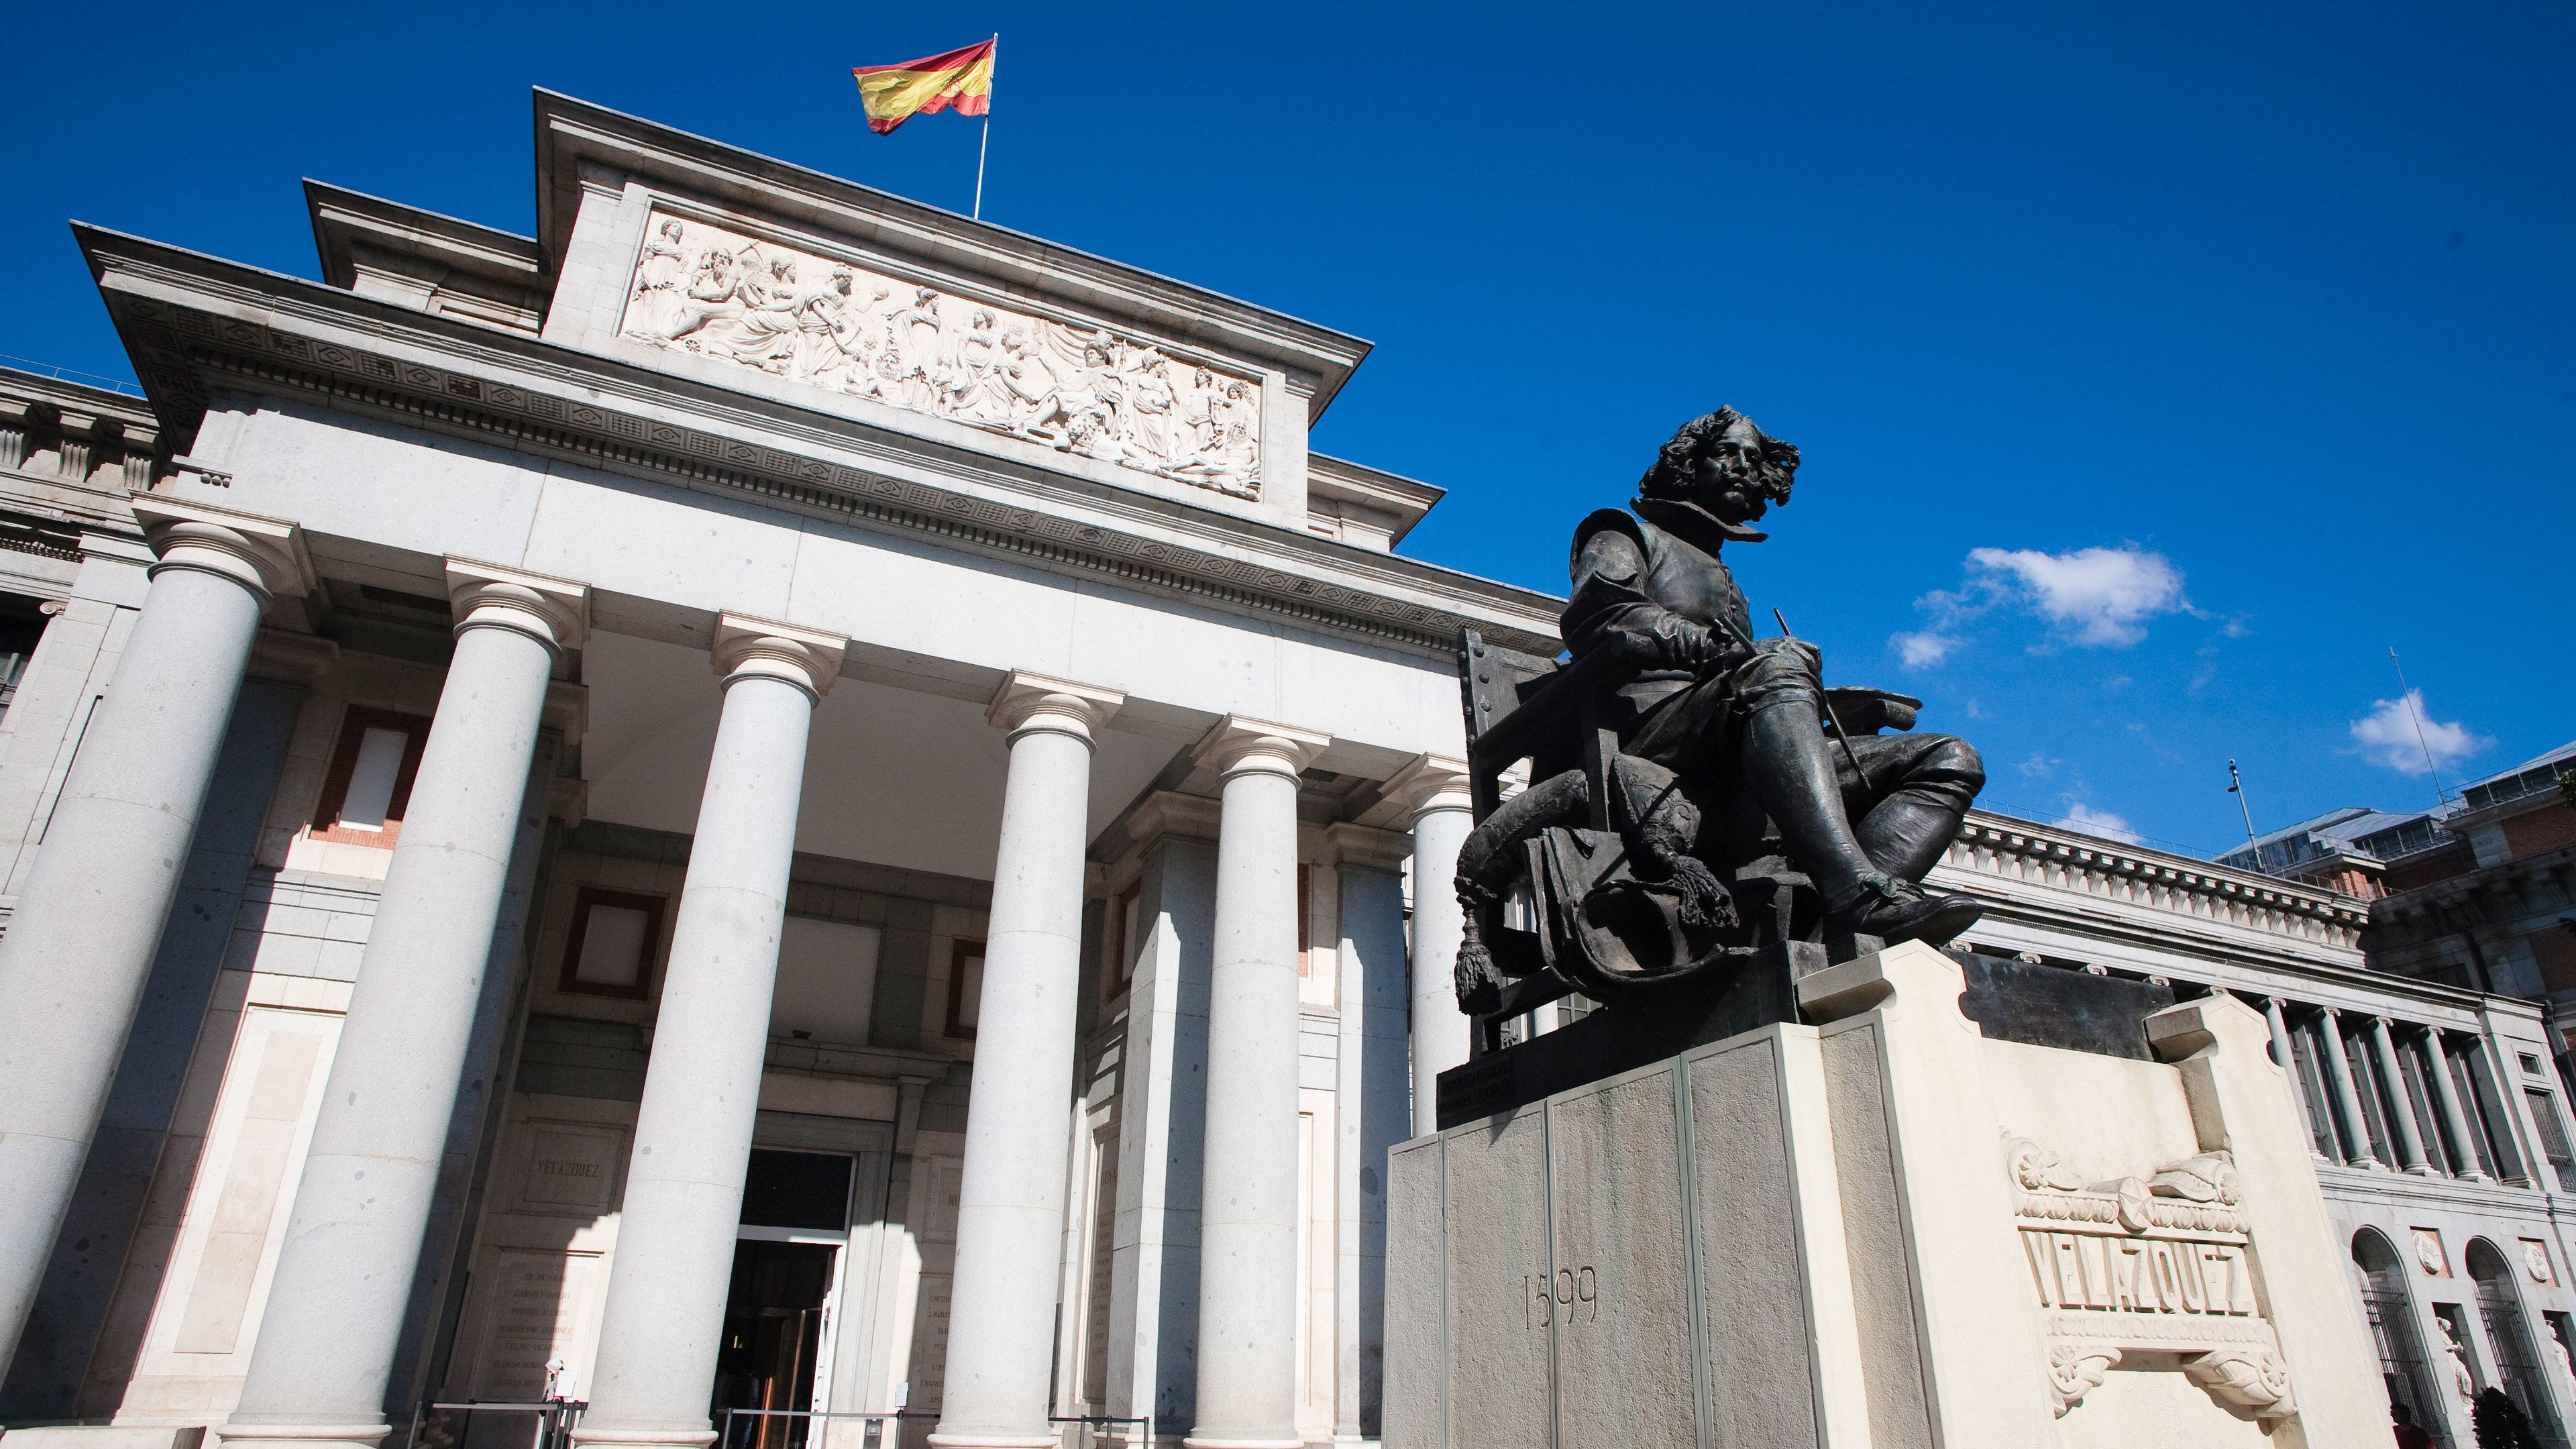 Statue in front of the Museo del Prado the main Spanish national art museum in Madrid